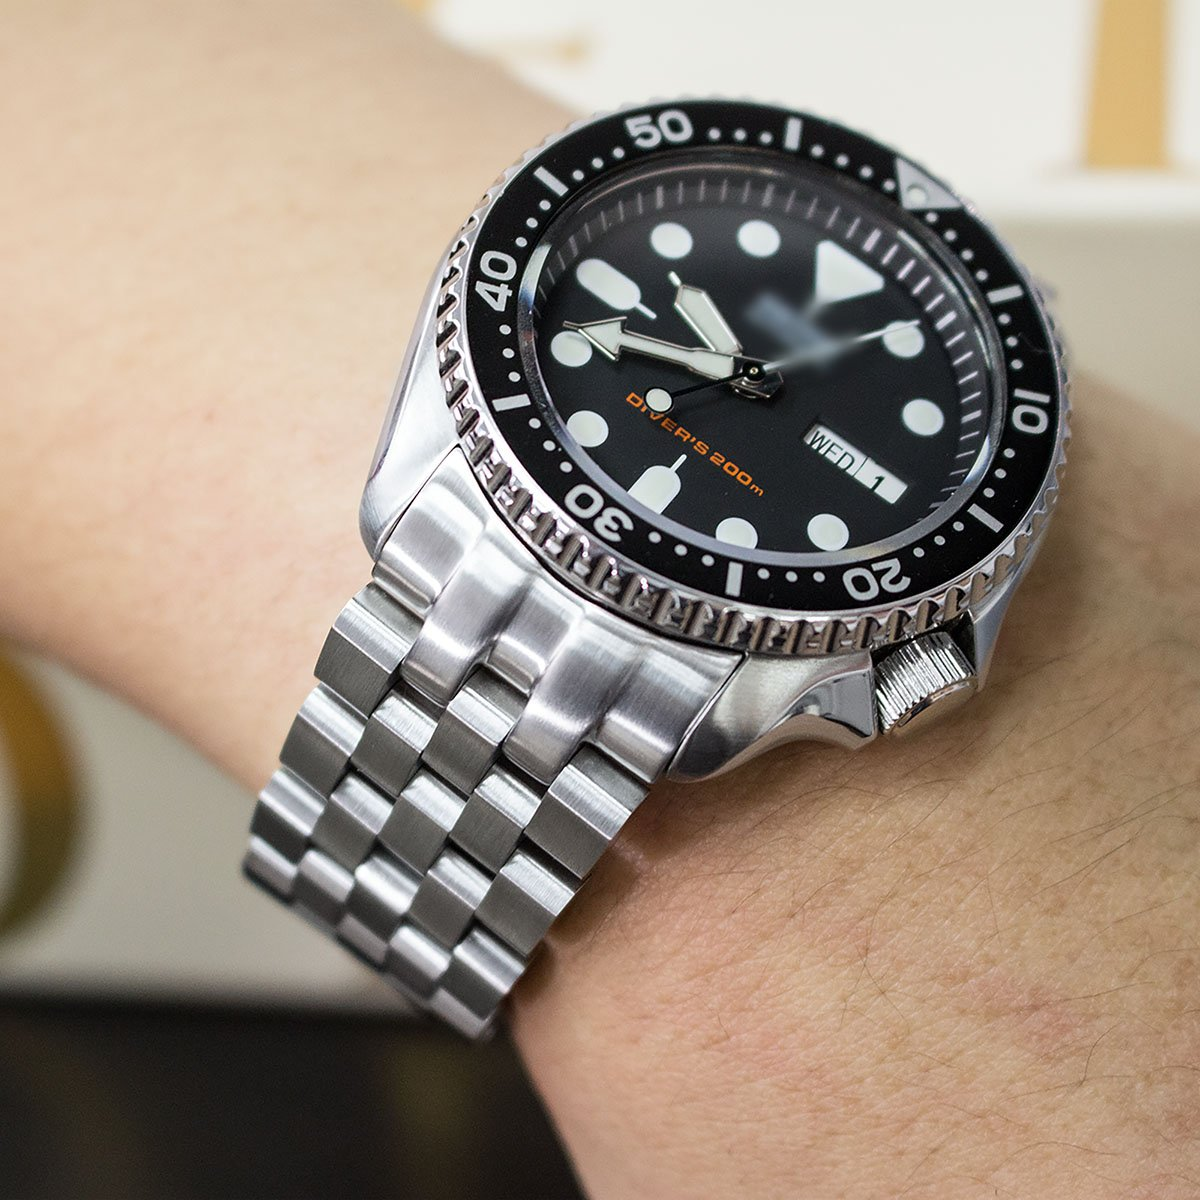 Super Engineer II Watch Bracelet for SEIKO SKX007 SKX009, Brushed, Button Chamfer by Seiko Replacement by MiLTAT (Image #2)